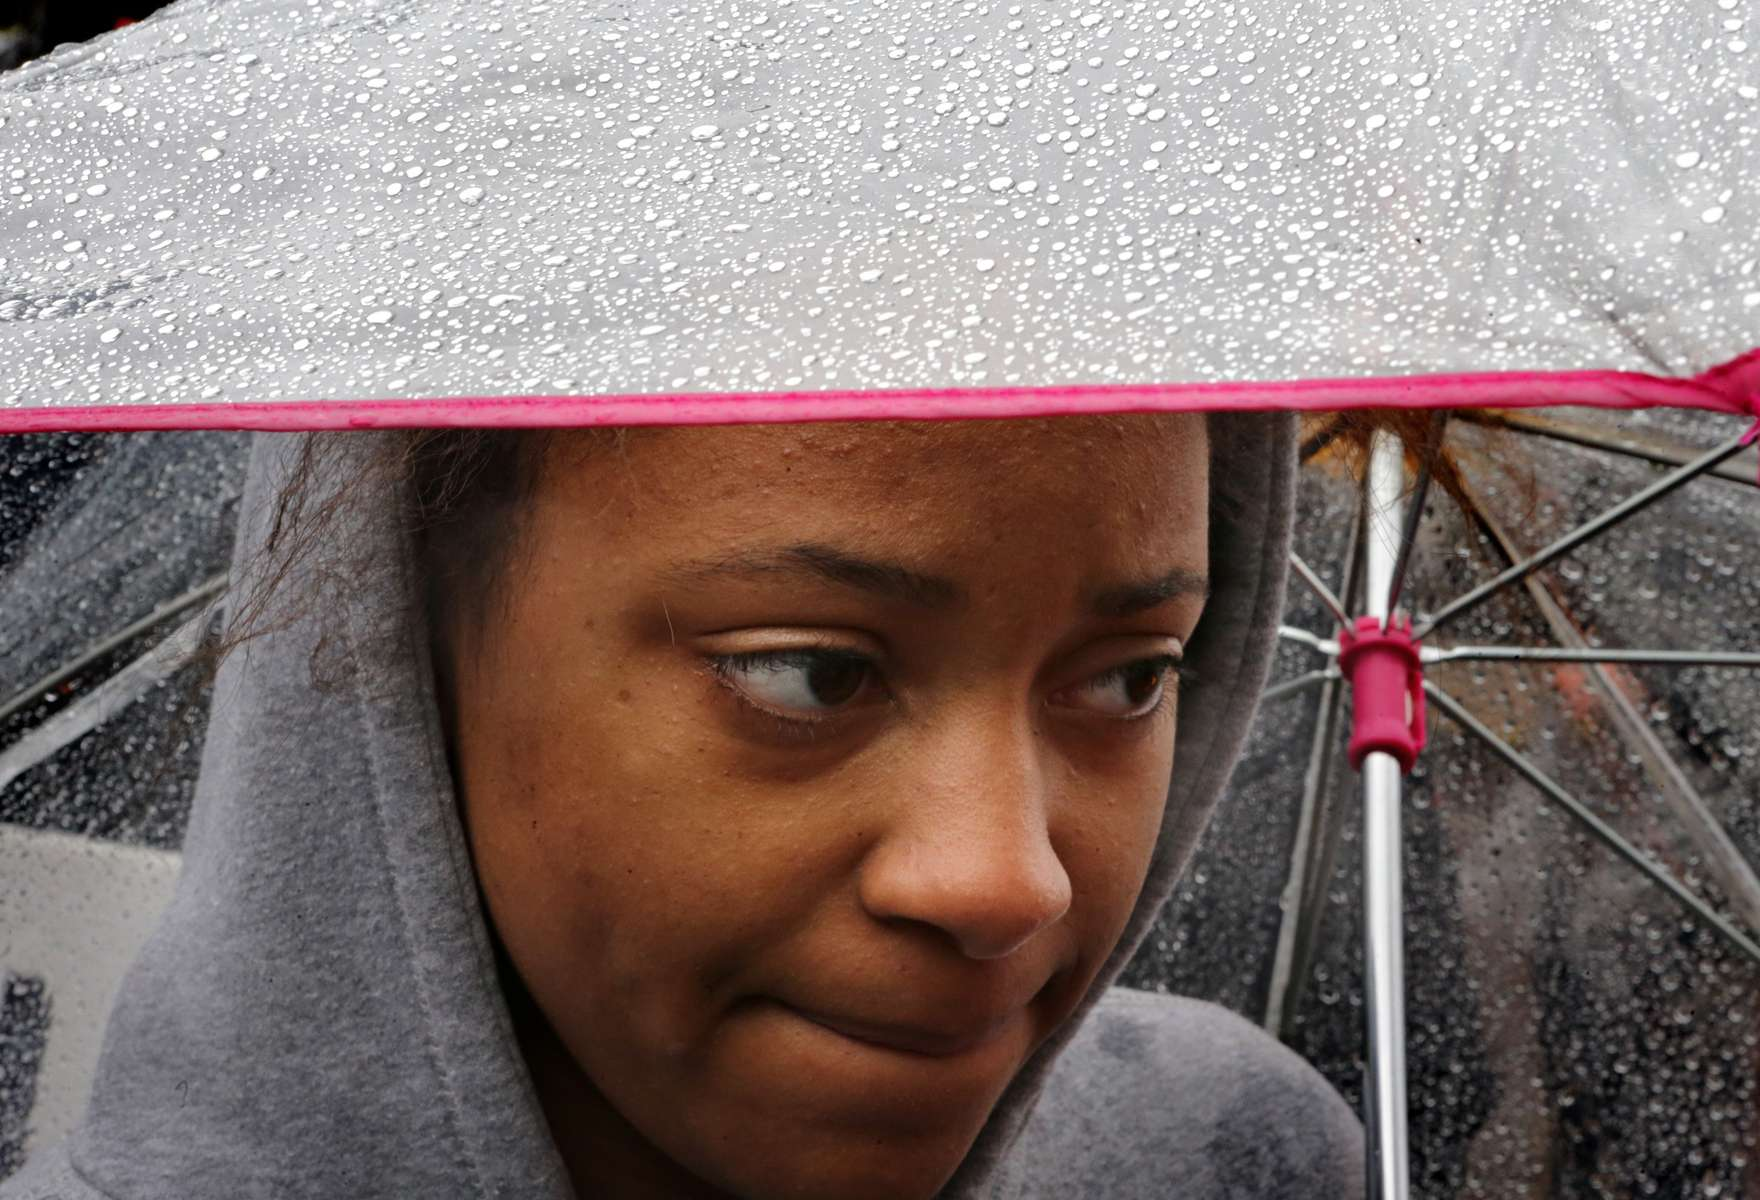 Lakeyra Stephens, 20, takes shelter from the rain under her umbrella after she marched with protesters around downtown Clayton during the first Ferguson October protests on Friday, Oct. 10, 2014.  About 400 people too part in the march and protest aimed at getting justice for Michael Brown and to get St. Louis County prosecuting attorney's Bob McCulloch to step aside and bring in a special prosecutor.  Stephens, a Webster University student from Texas, says she showed put show solidarity with the protesters.  She went on to say that she was surprised by the level of segregation she sees in St. Louis compared to Texas.